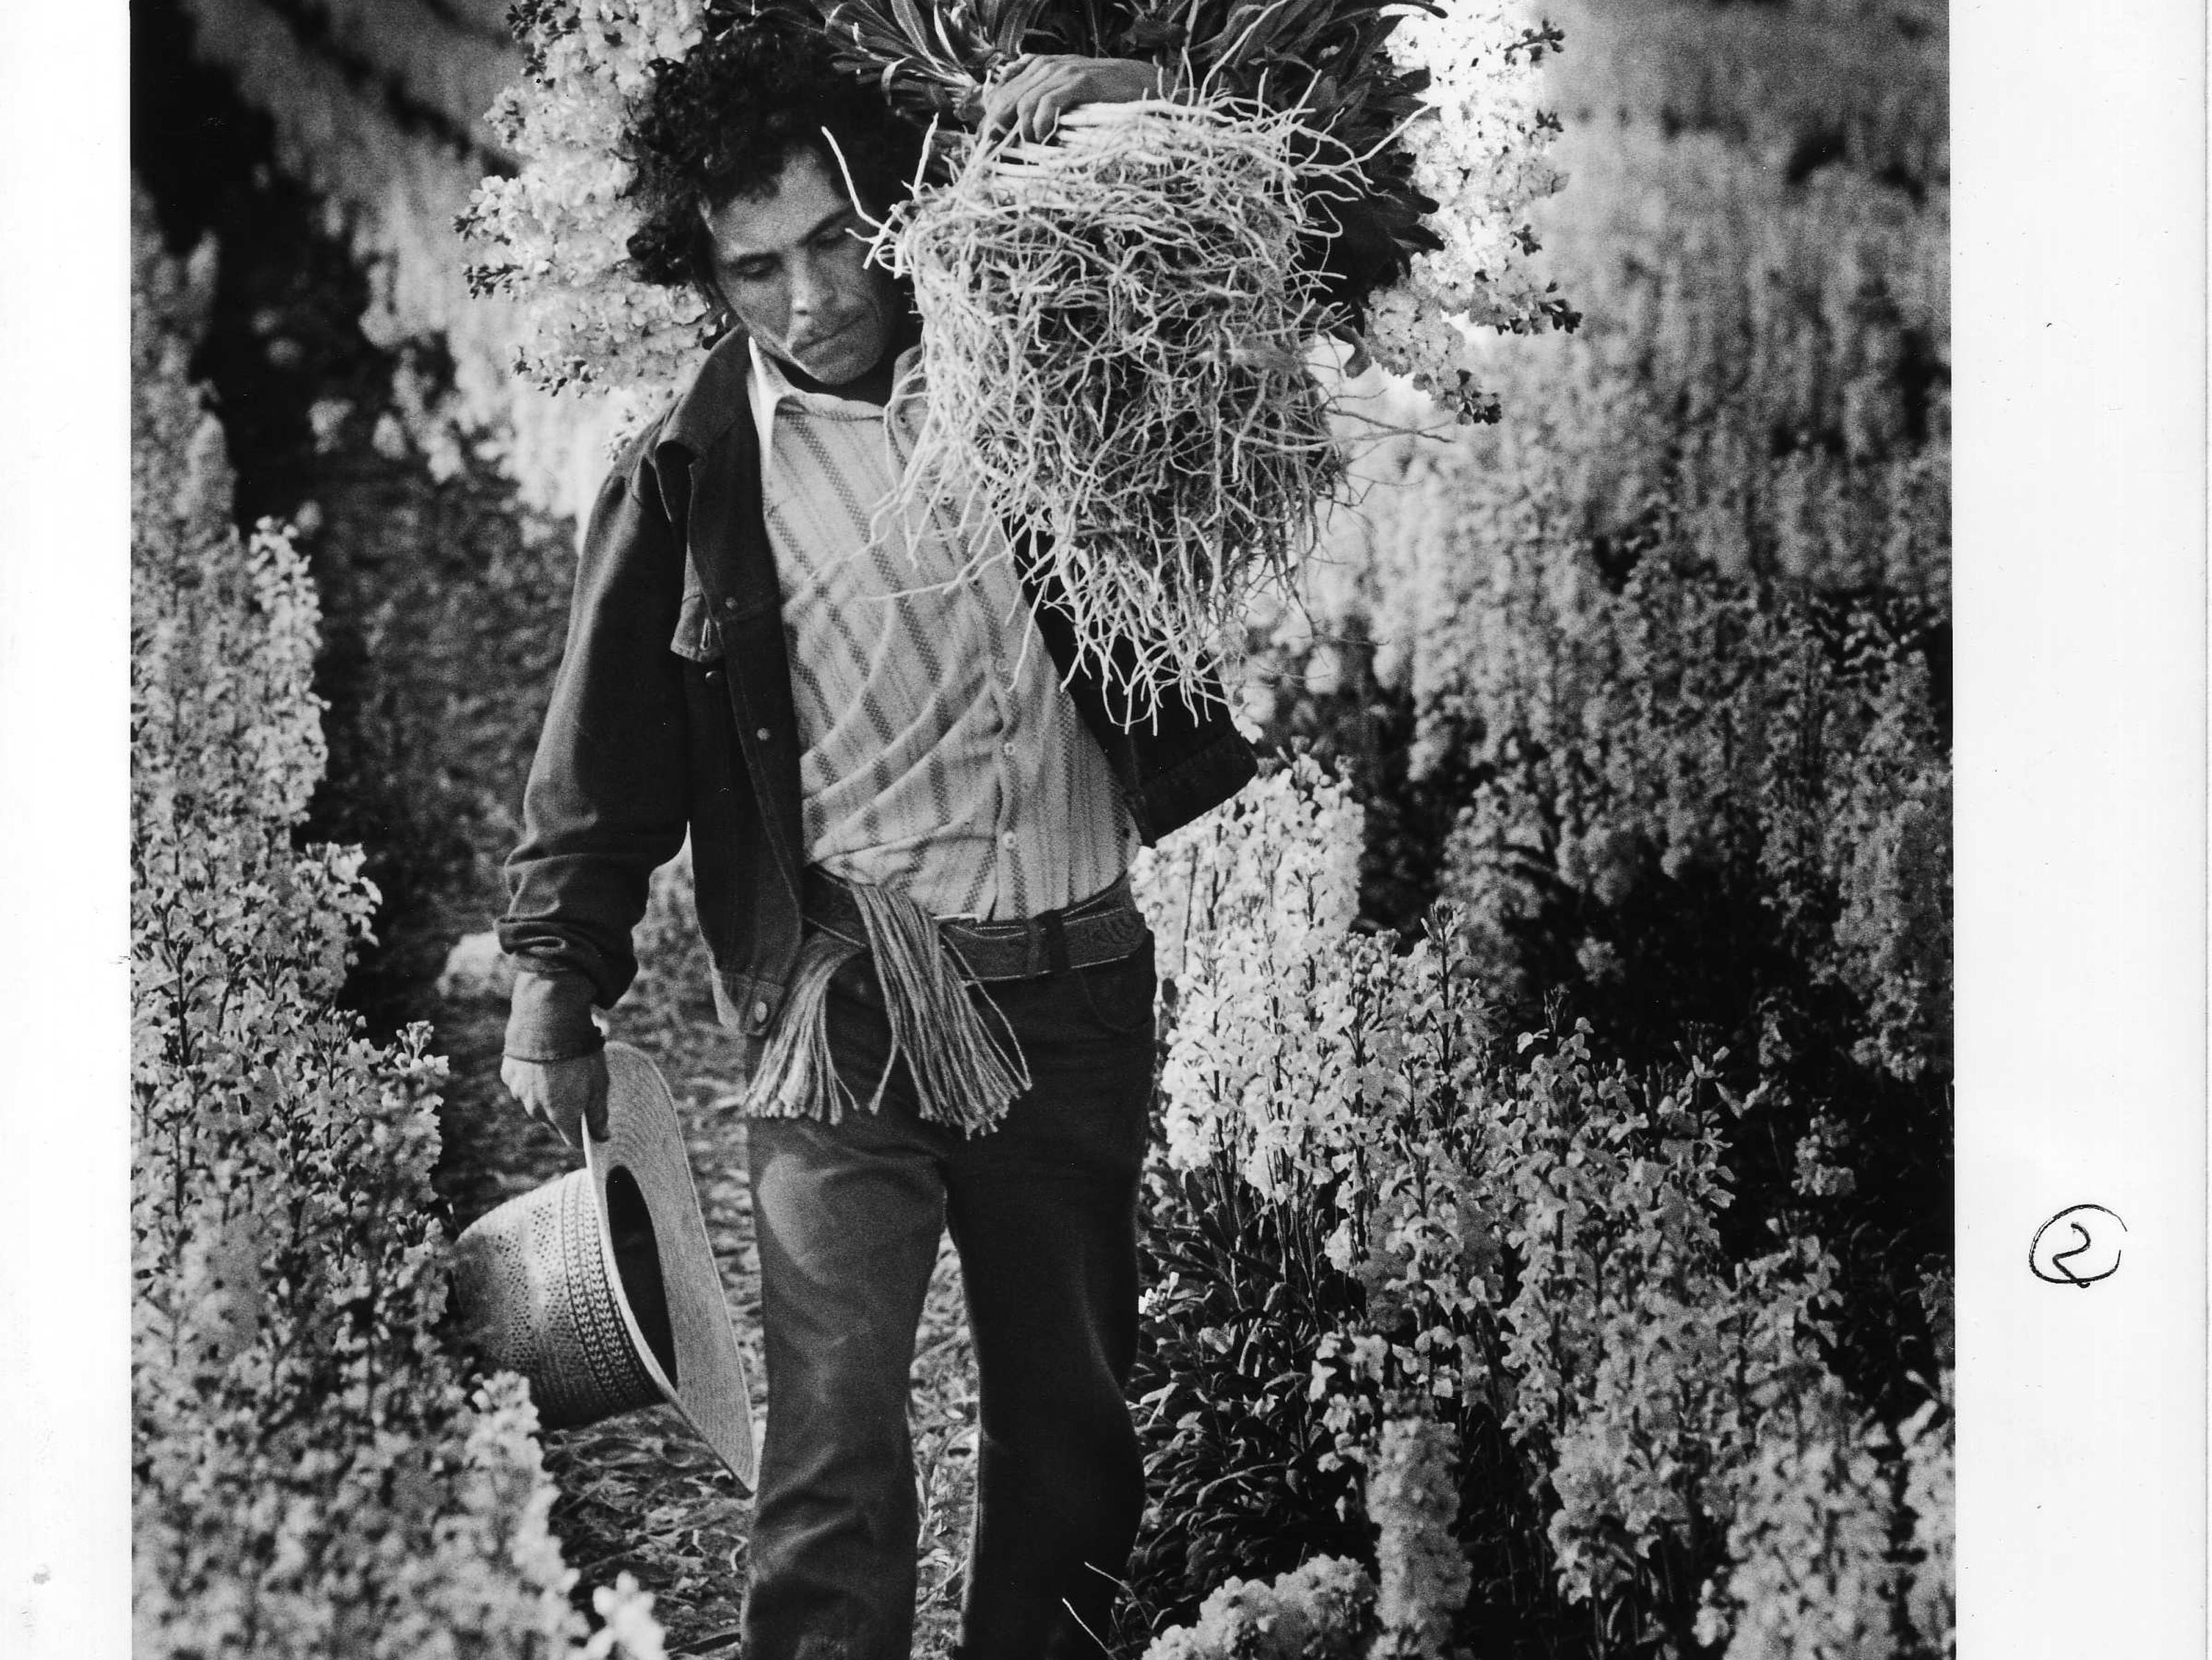 A worker hauls flowers in a Japanese flower garden in Phoenix in 1982.